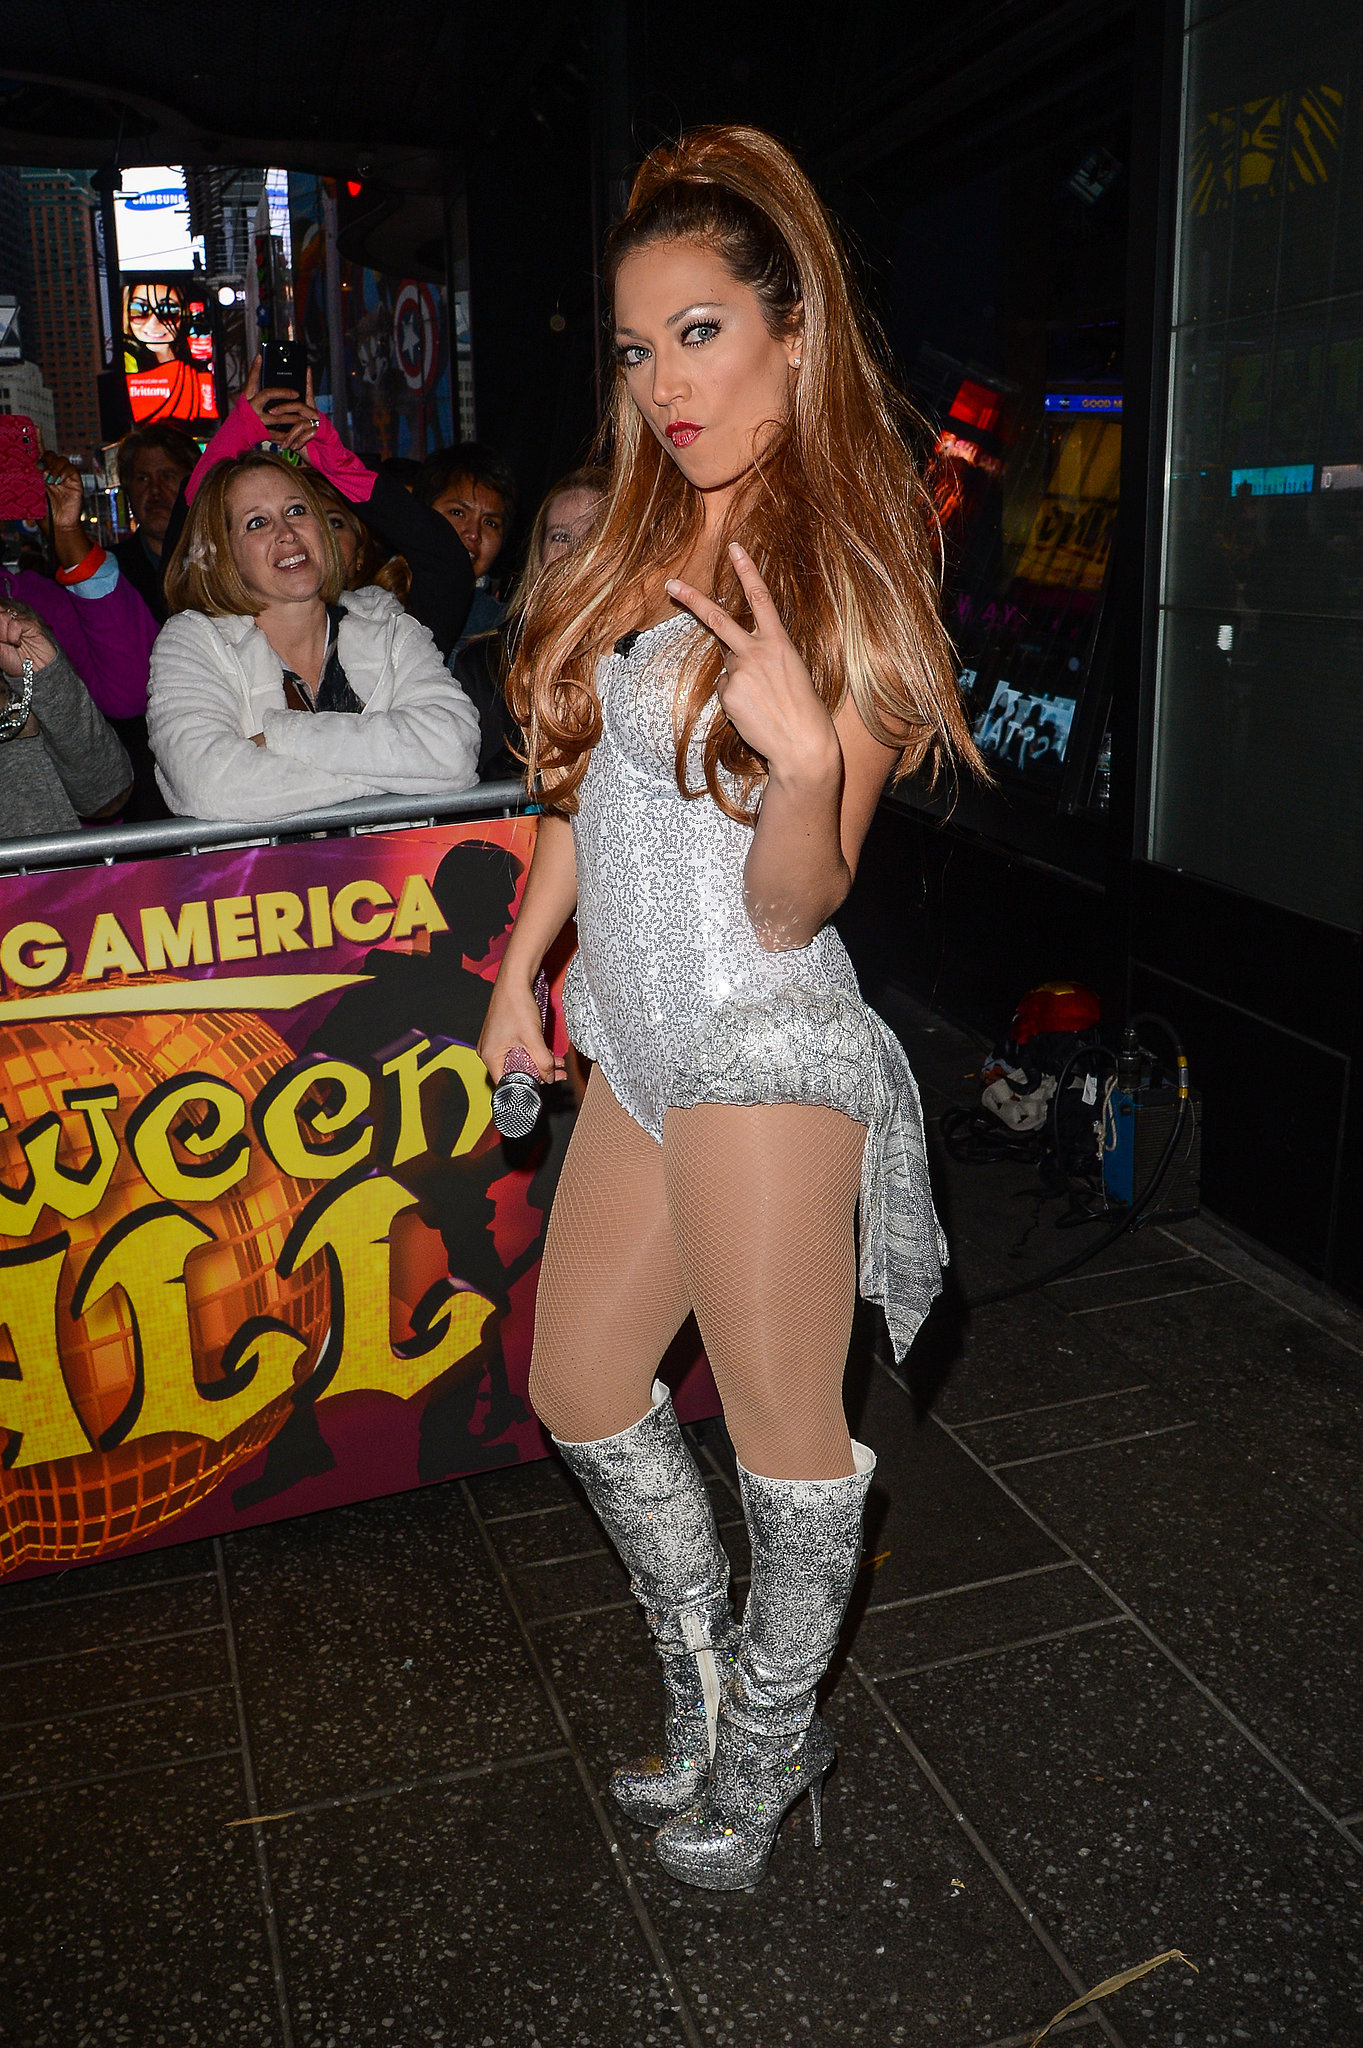 Beyonce Glitter Outfits